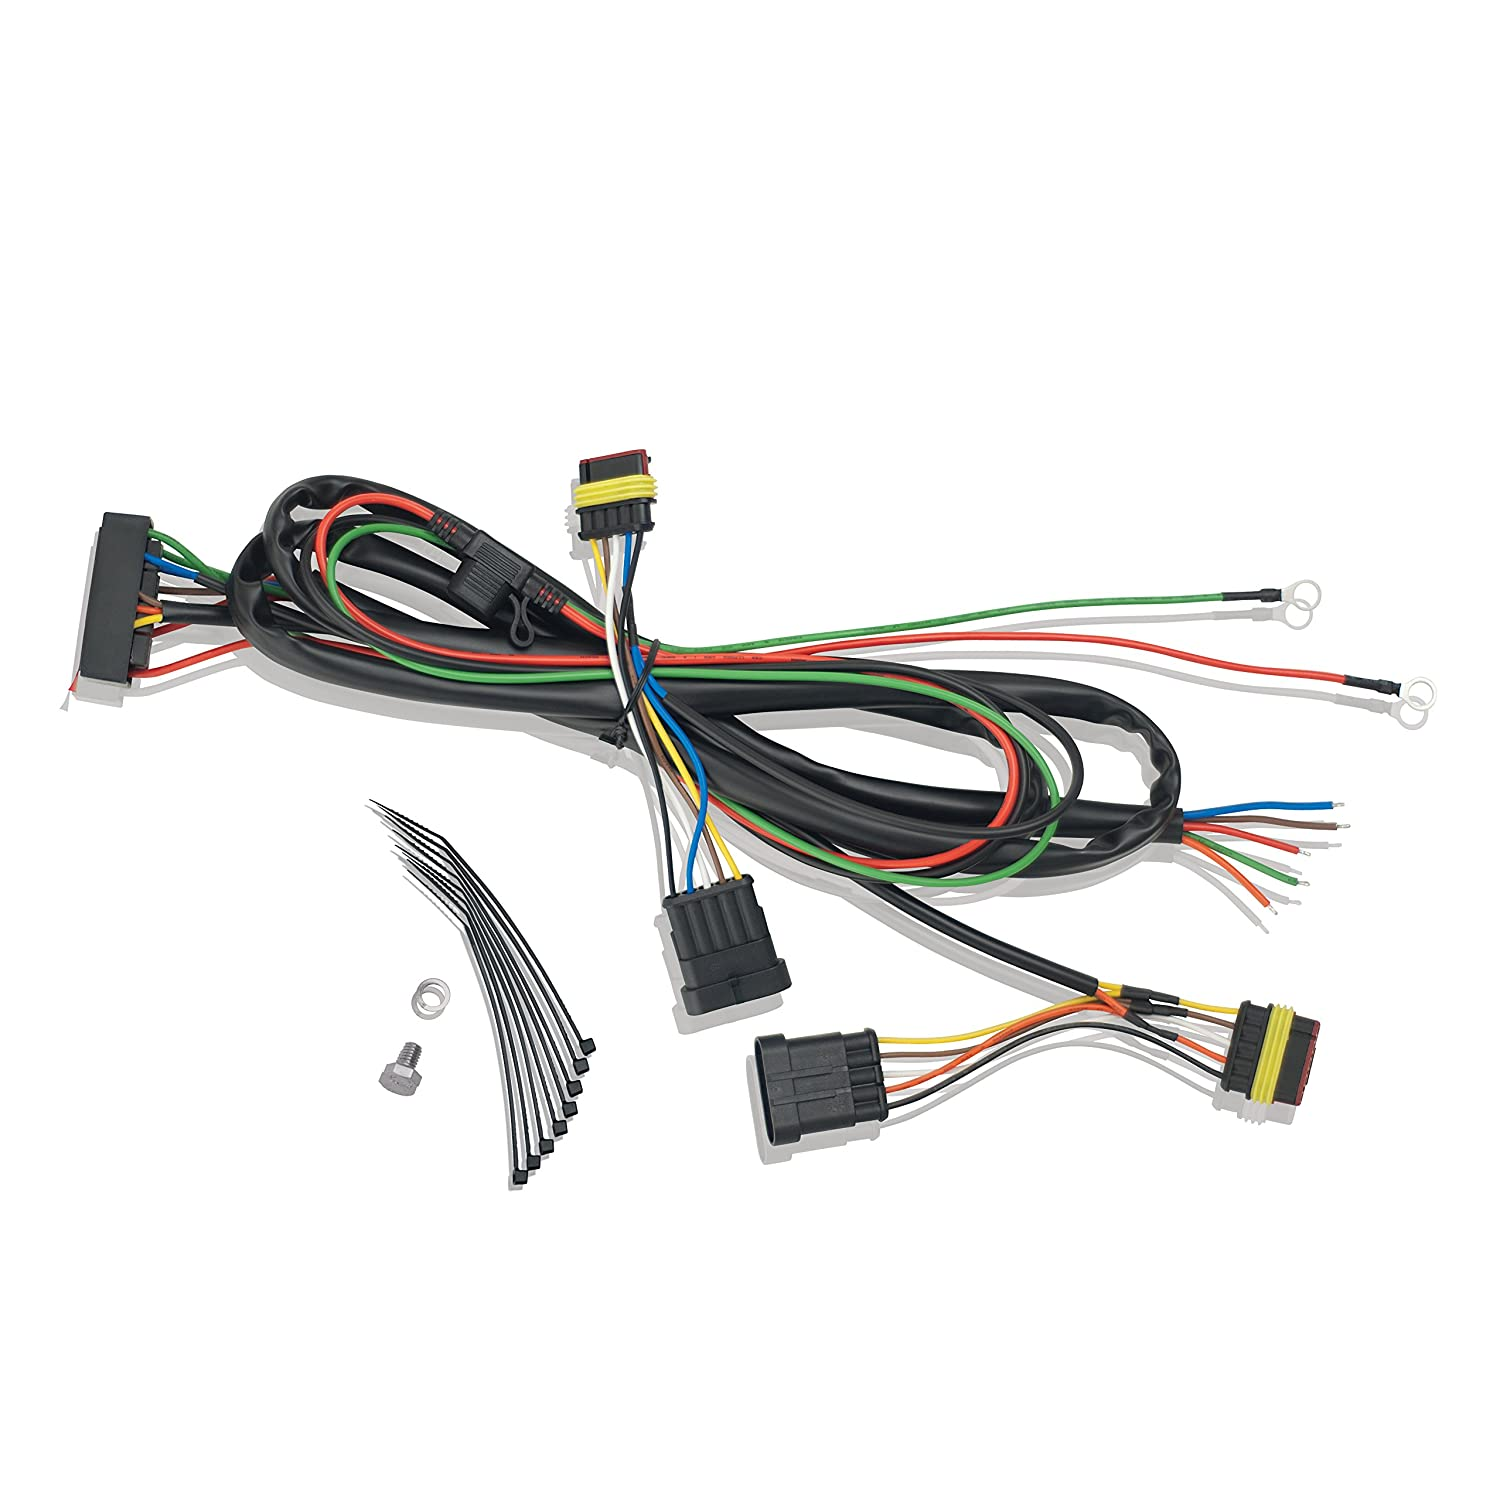 81dZHpG1lCL._SL1500_ amazon com show chrome accessories 41 162 trailer wire harness Aircraft Electrical Harness at couponss.co